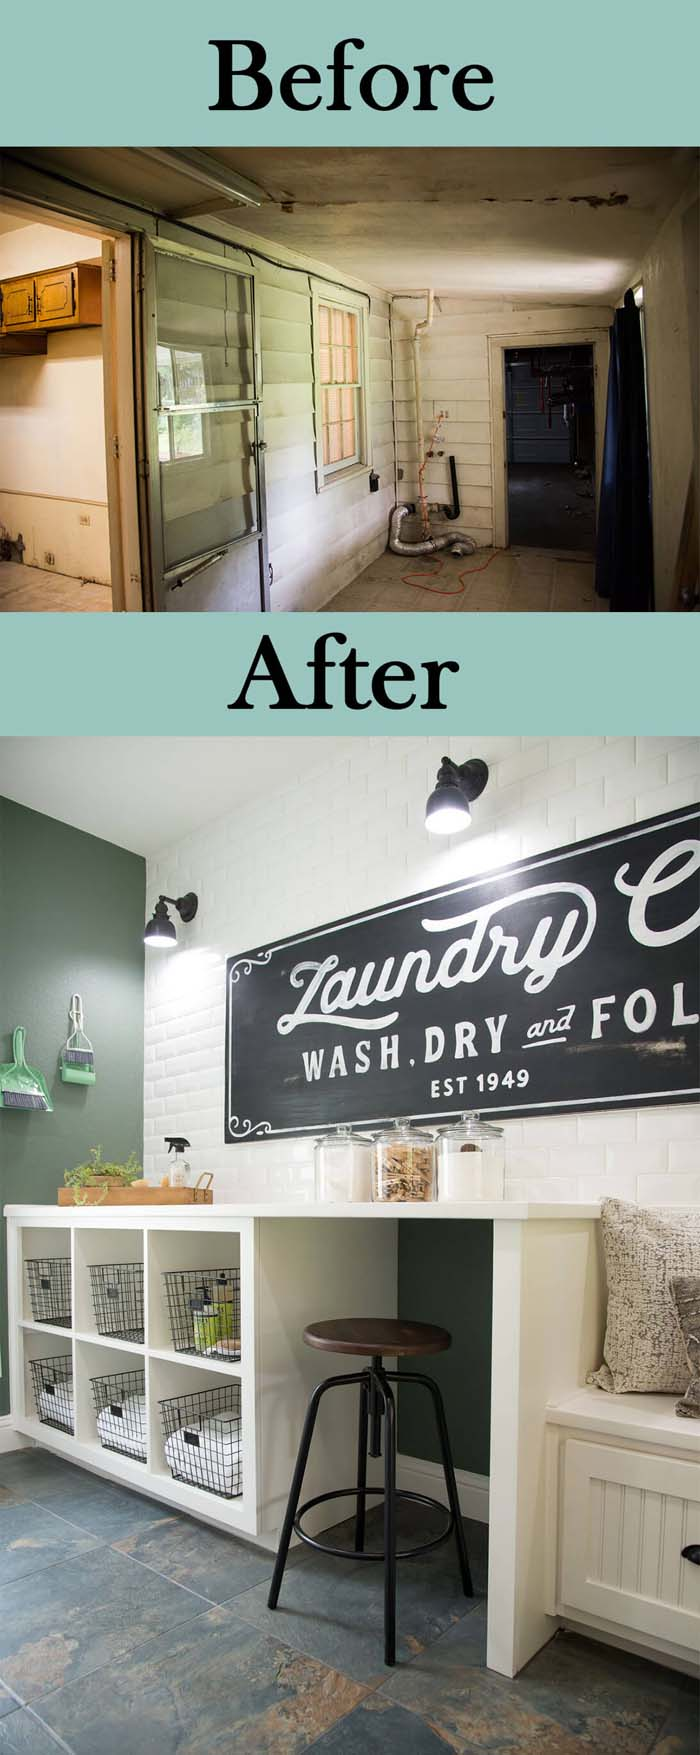 Large Space with a Touch of Retro Decor #laundryroom #makeover #decorhomeideas